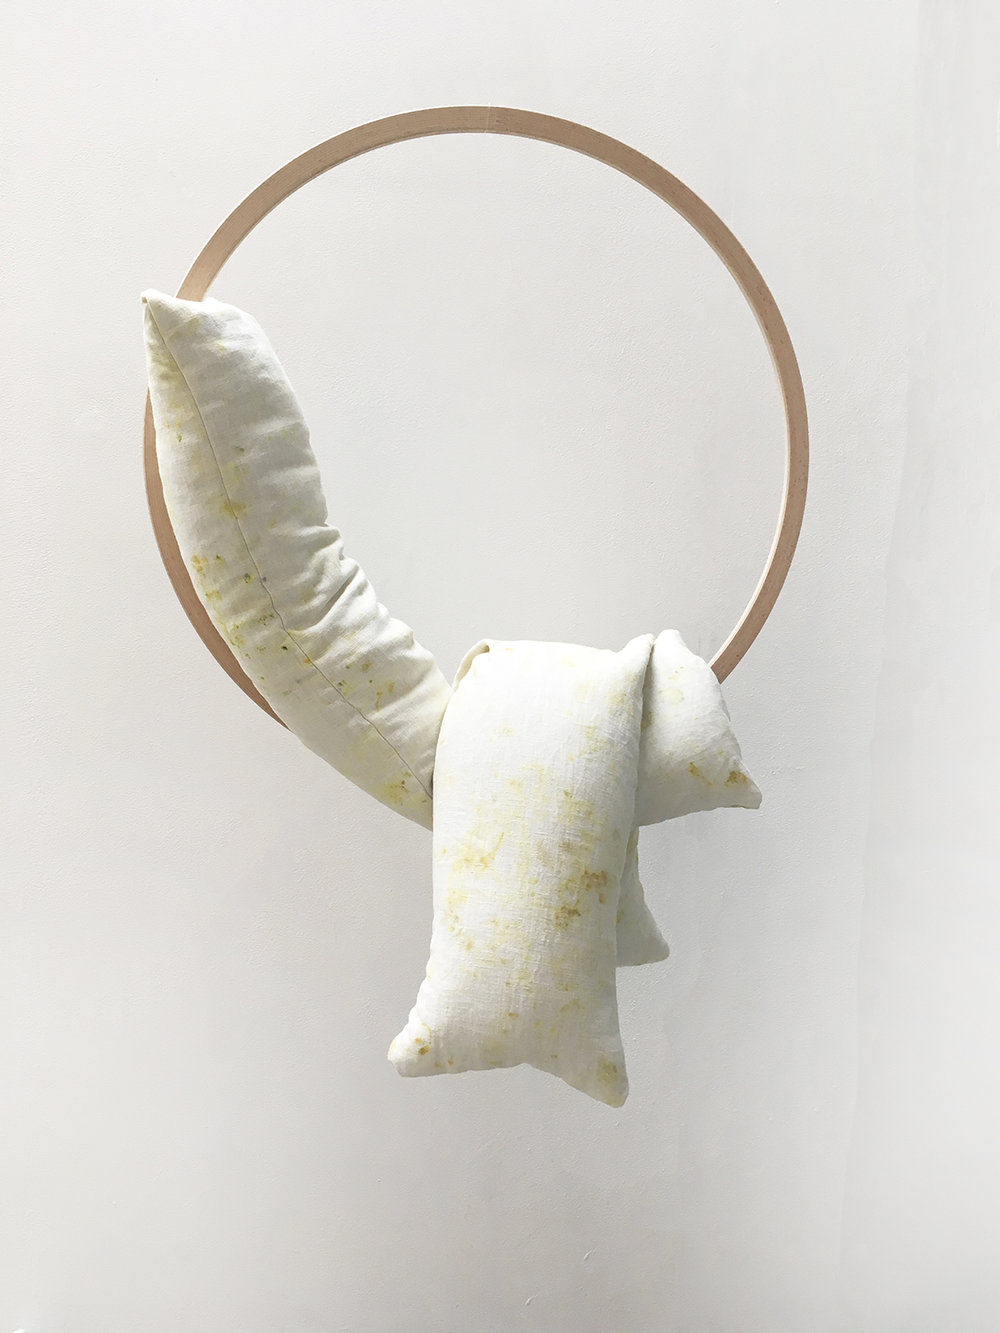 Lungs II (2018), soft sculpture on suspended wooden hoop, linen dyed with foraged elderflower, ground ivy and pine with chamomile.